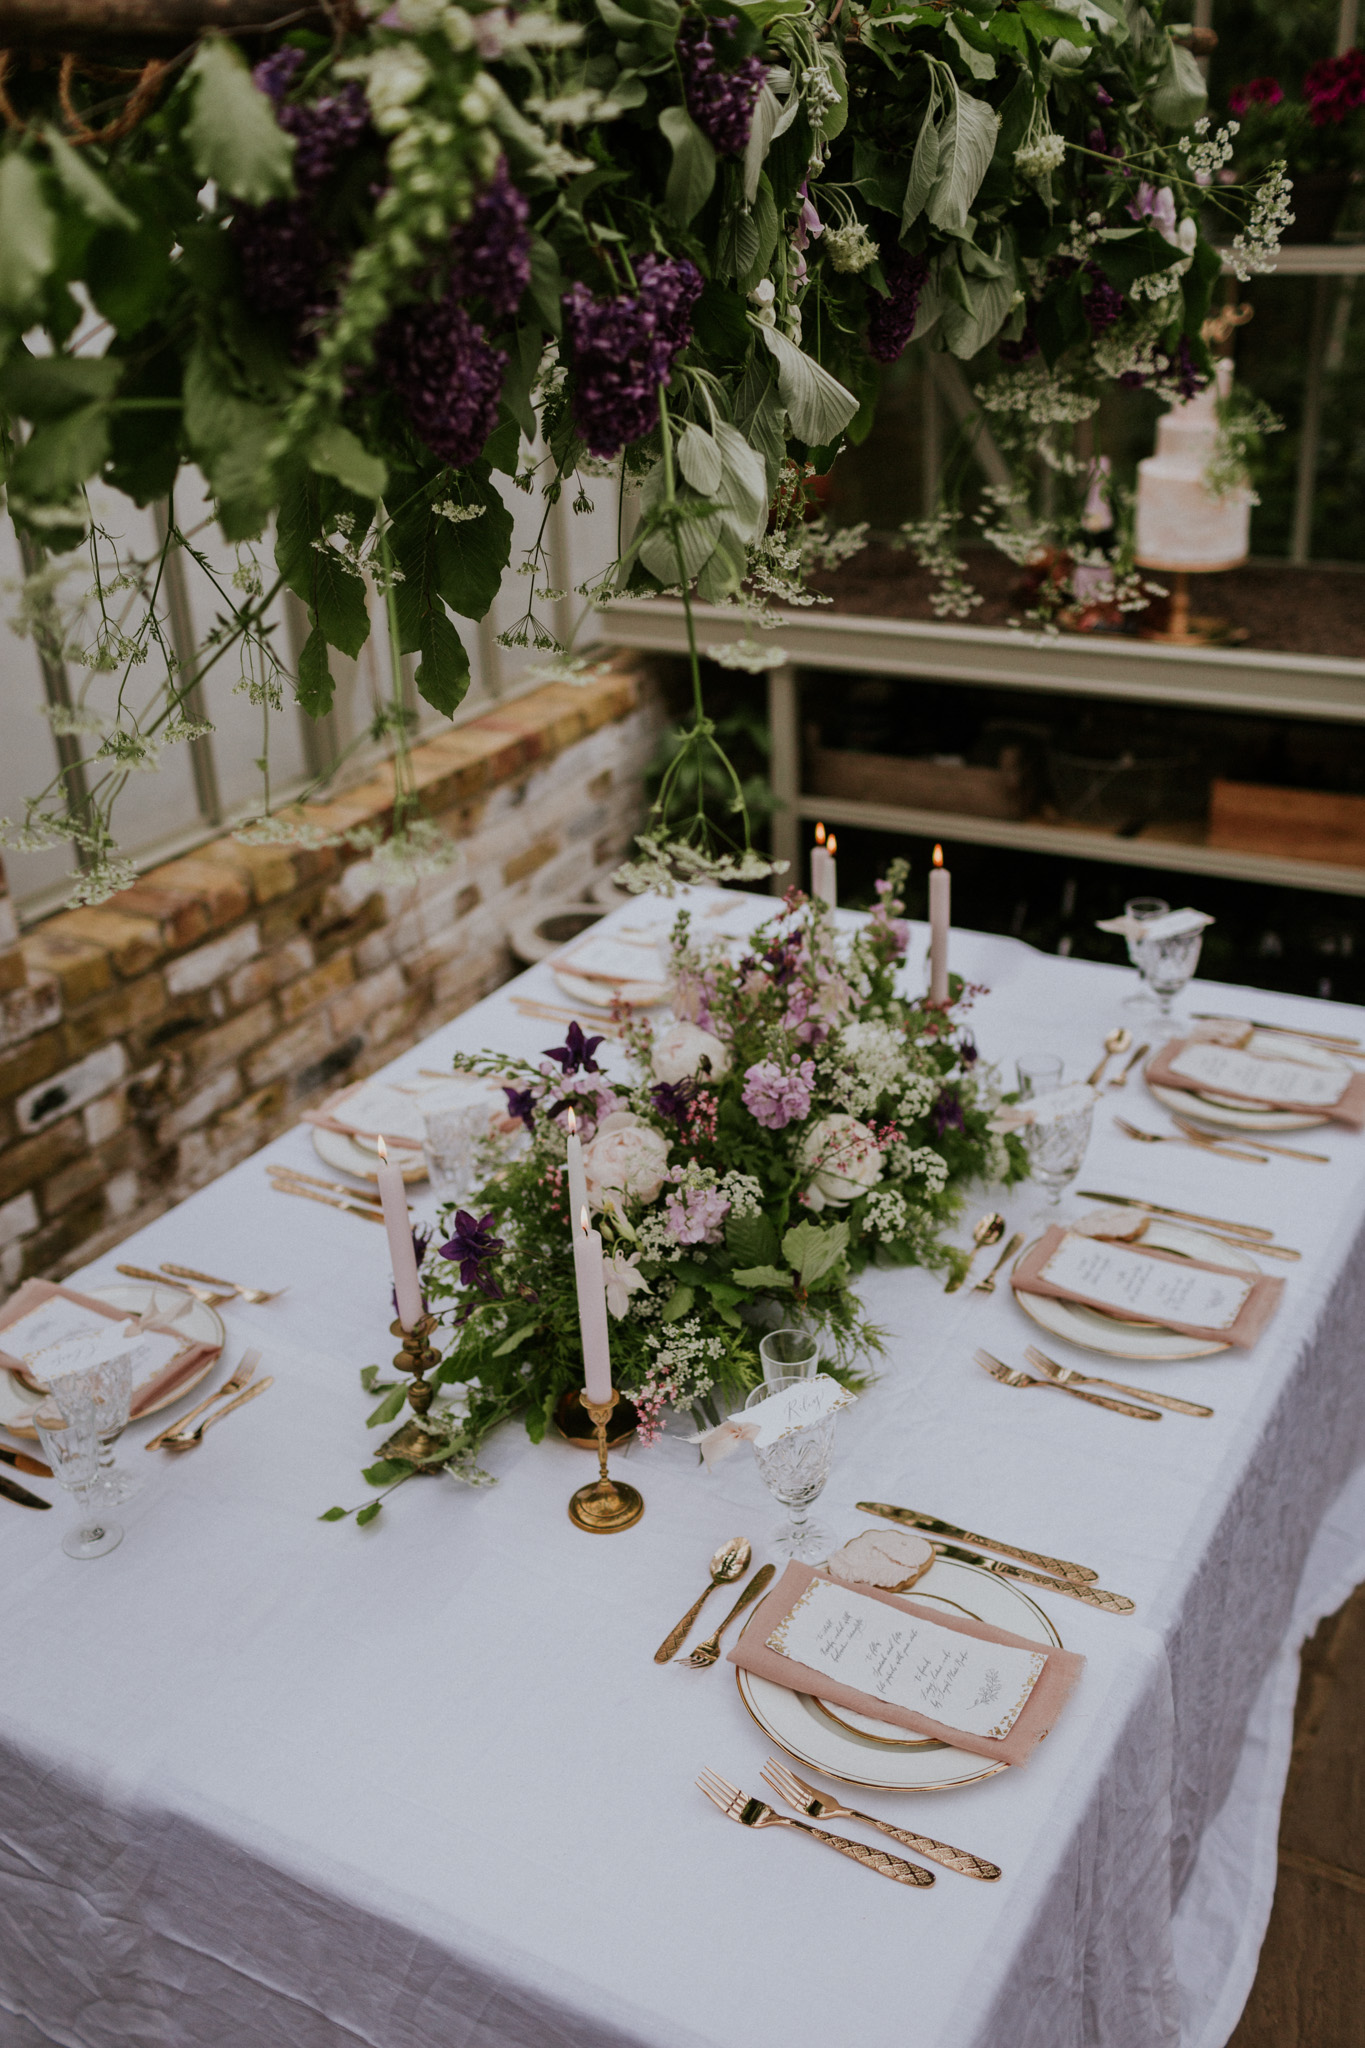 The gorgeous table setting. Styled by Amy with that lush floral design by Leigh and Sarah.